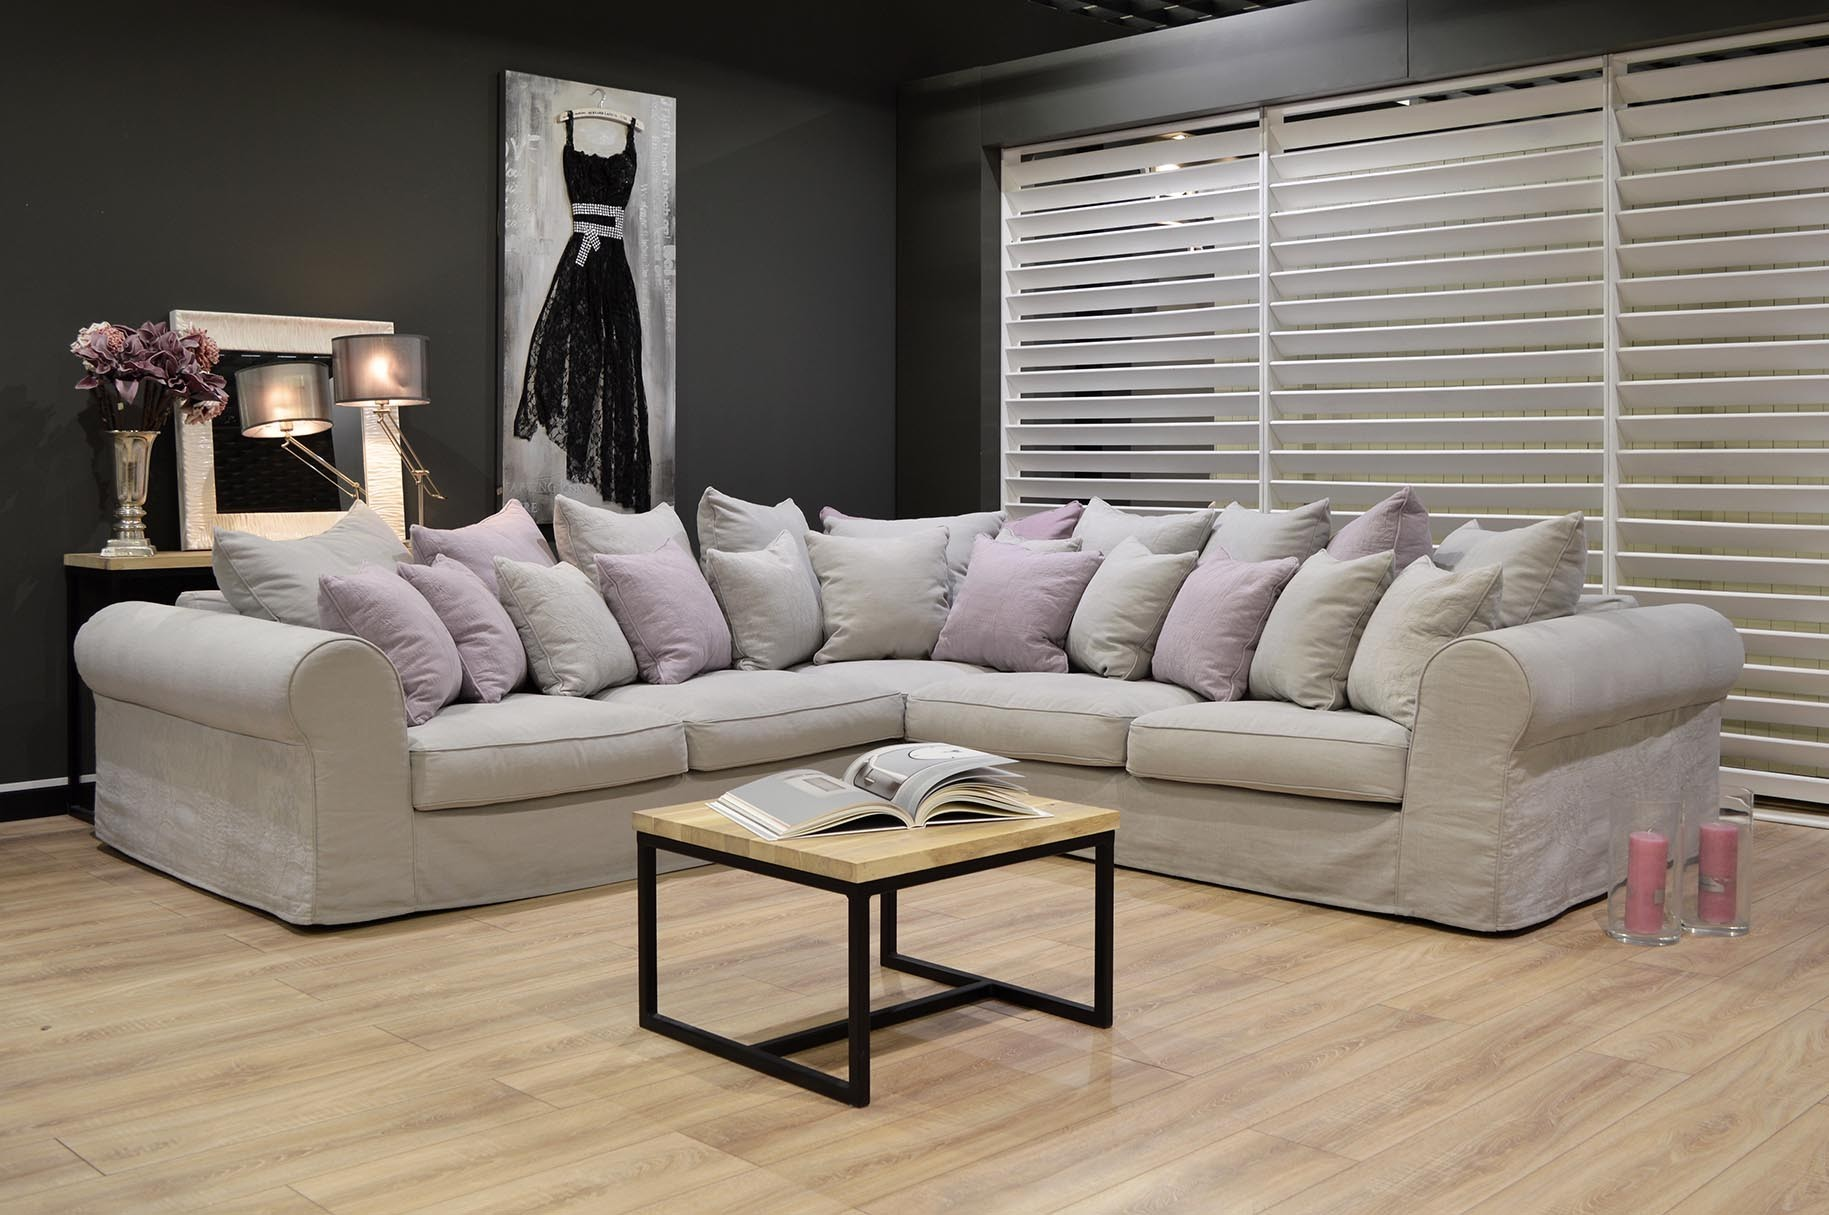 sofa mit husse beautiful sofa bari mit husse aus leinen diverse lnge with sofa mit husse good. Black Bedroom Furniture Sets. Home Design Ideas